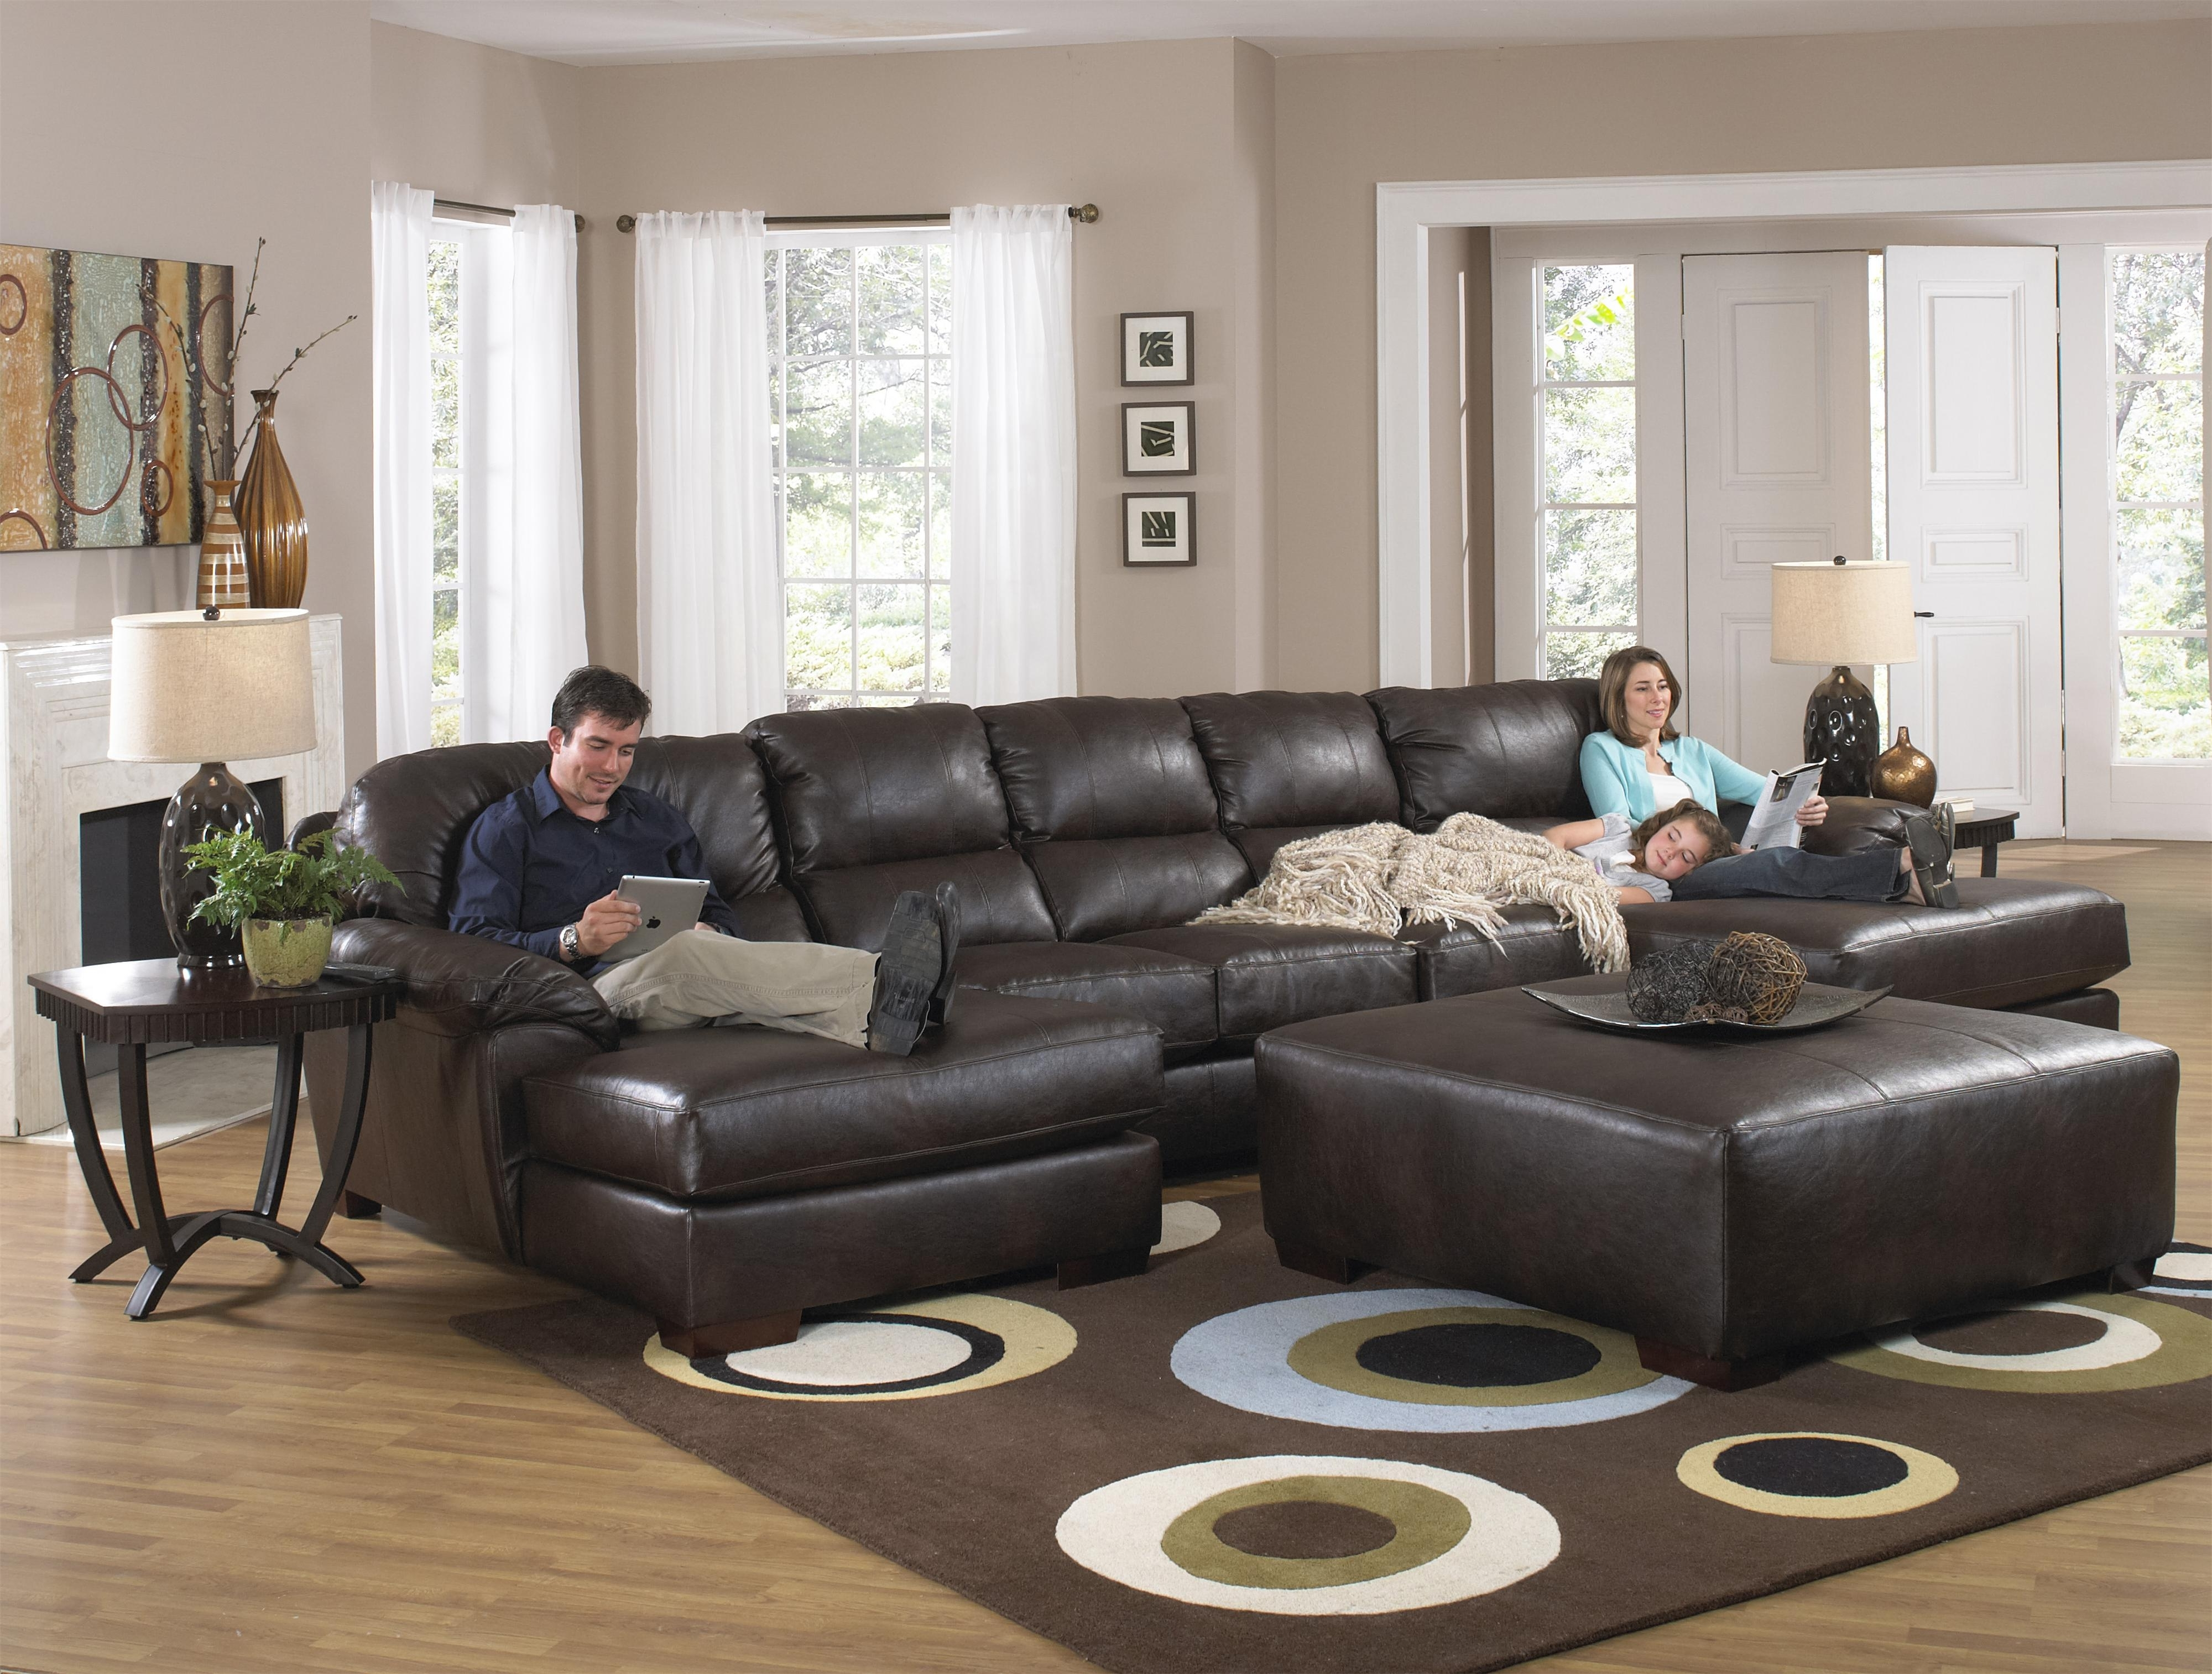 Newest Extra Deep Sectional Sofa Extra Large Sectional Sofas With Chaise Throughout Sectional Sofas With Recliners And Chaise (View 9 of 15)